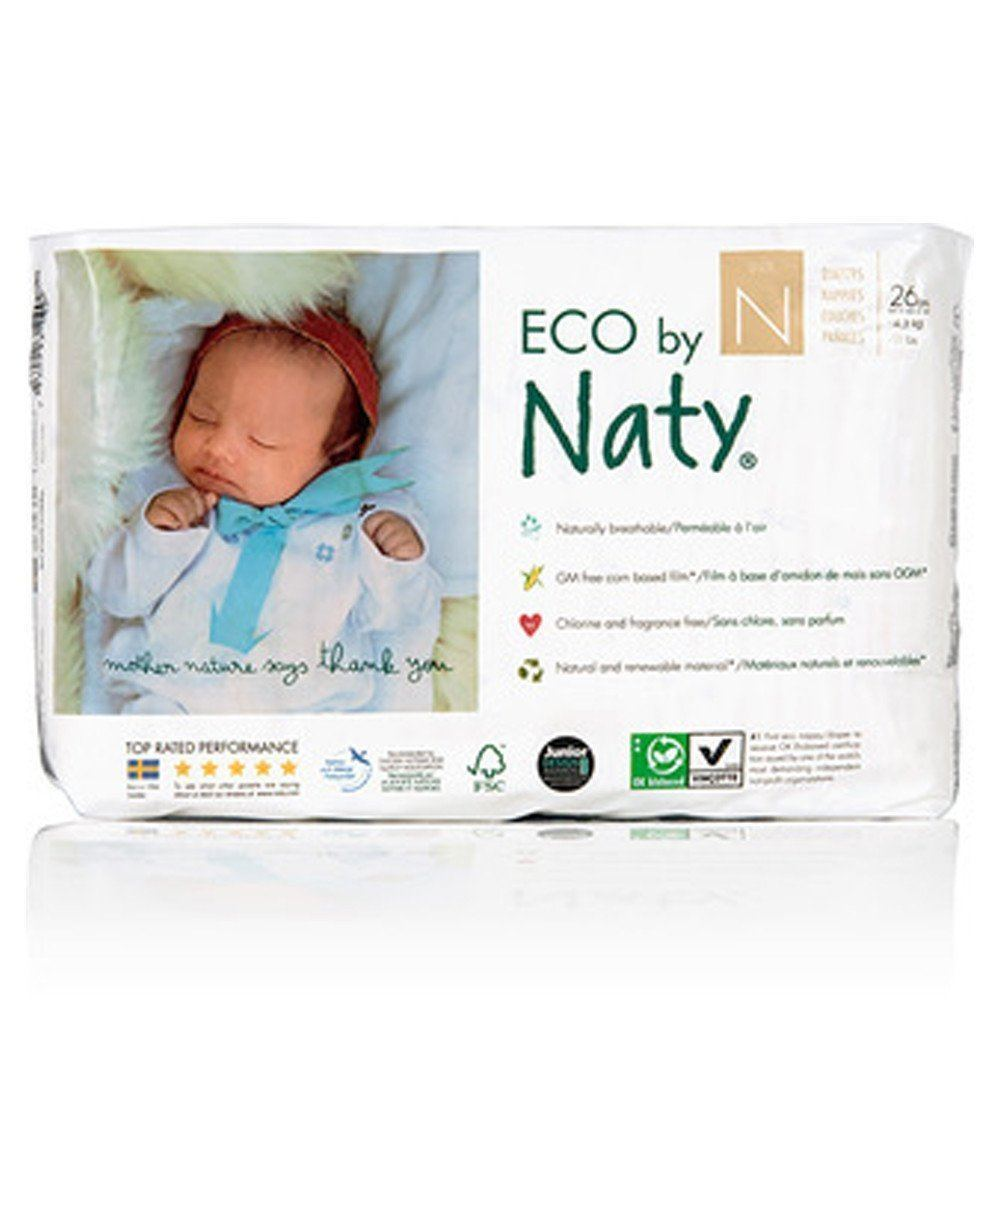 Naty Newborn Biodegradable ECO Diapers, Size 0, -11lbs Diapers and Wipes betterorganicformula.com